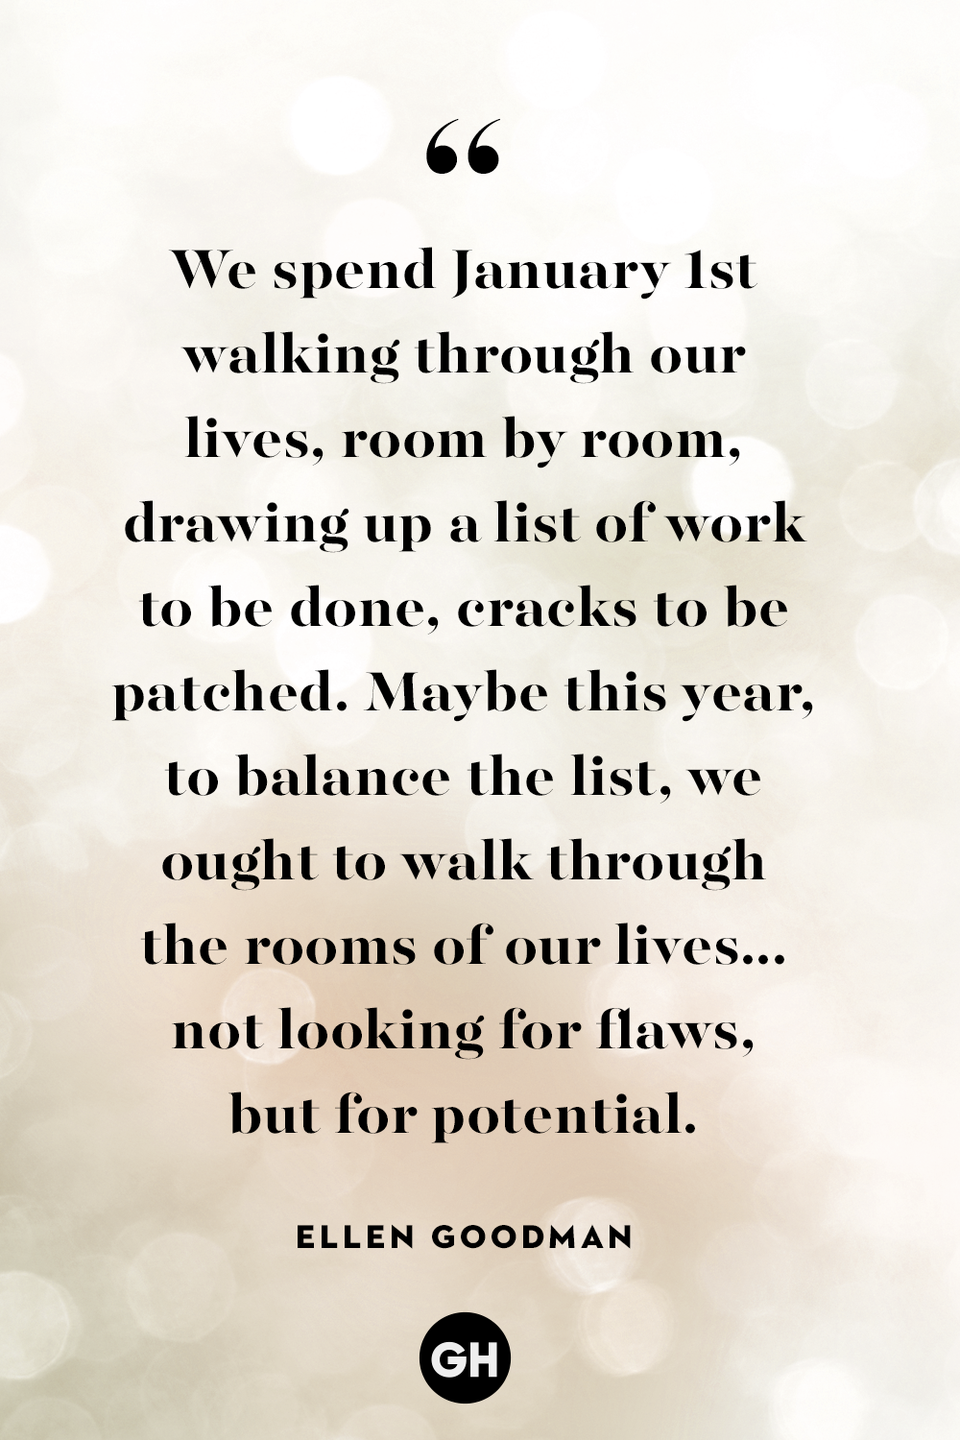 <p>We spend January 1st walking through our lives, room by room, drawing up a list of work to be done, cracks to be patched. Maybe this year, to balance the list, we ought to walk through the rooms of our lives ... not looking for flaws but for potential. </p>